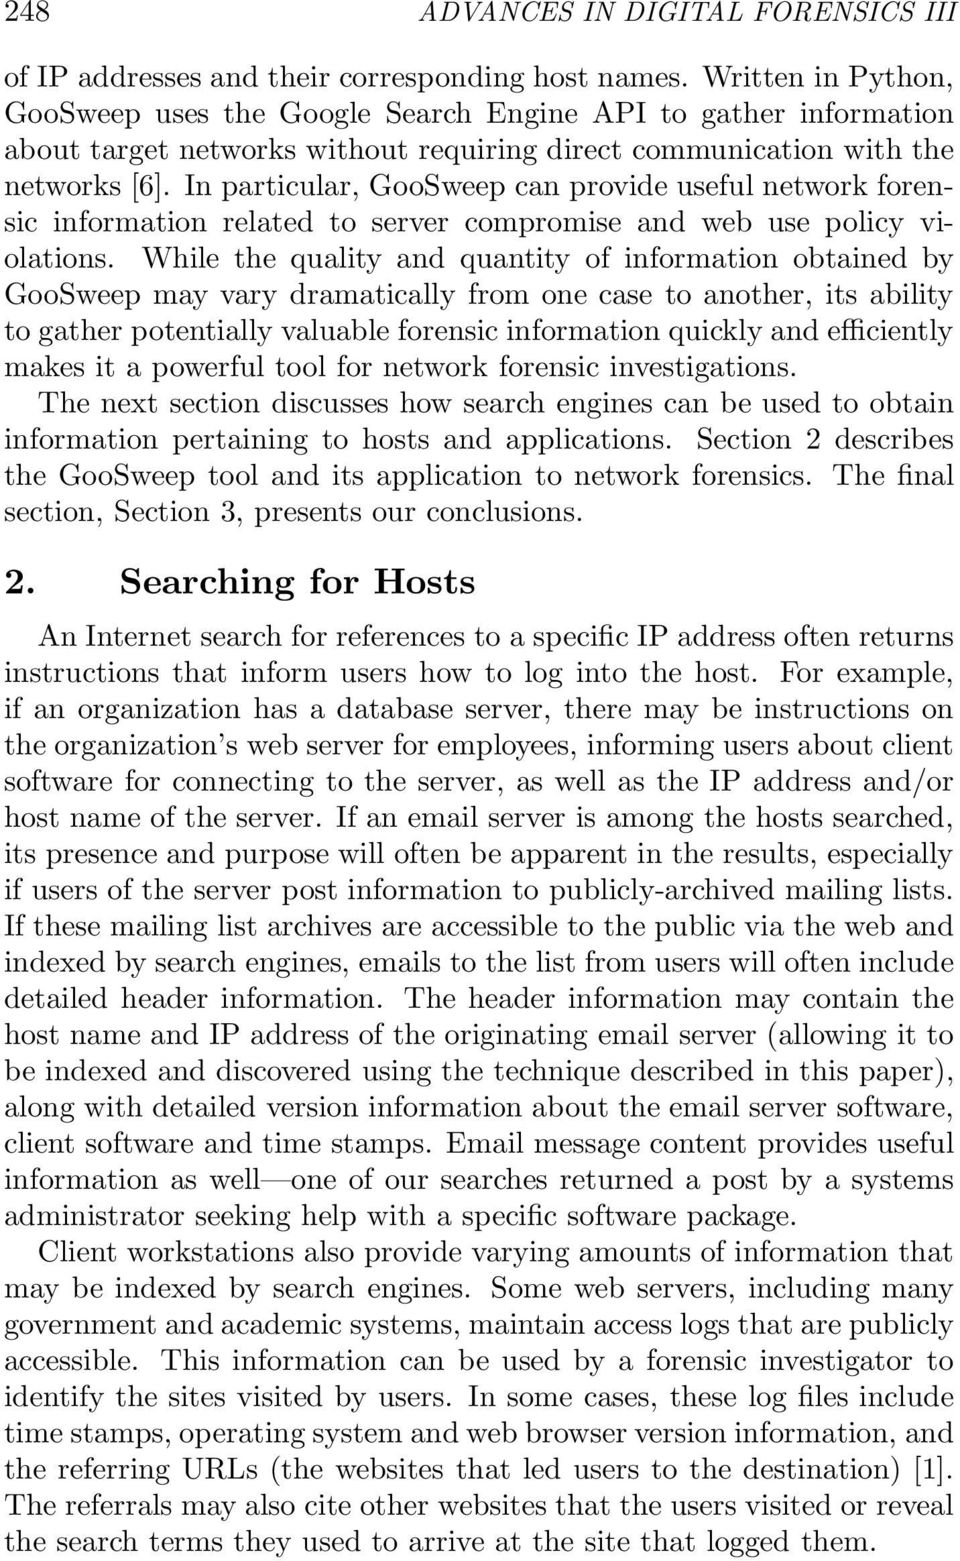 In particular, GooSweep can provide useful network forensic information related to server compromise and web use policy violations.